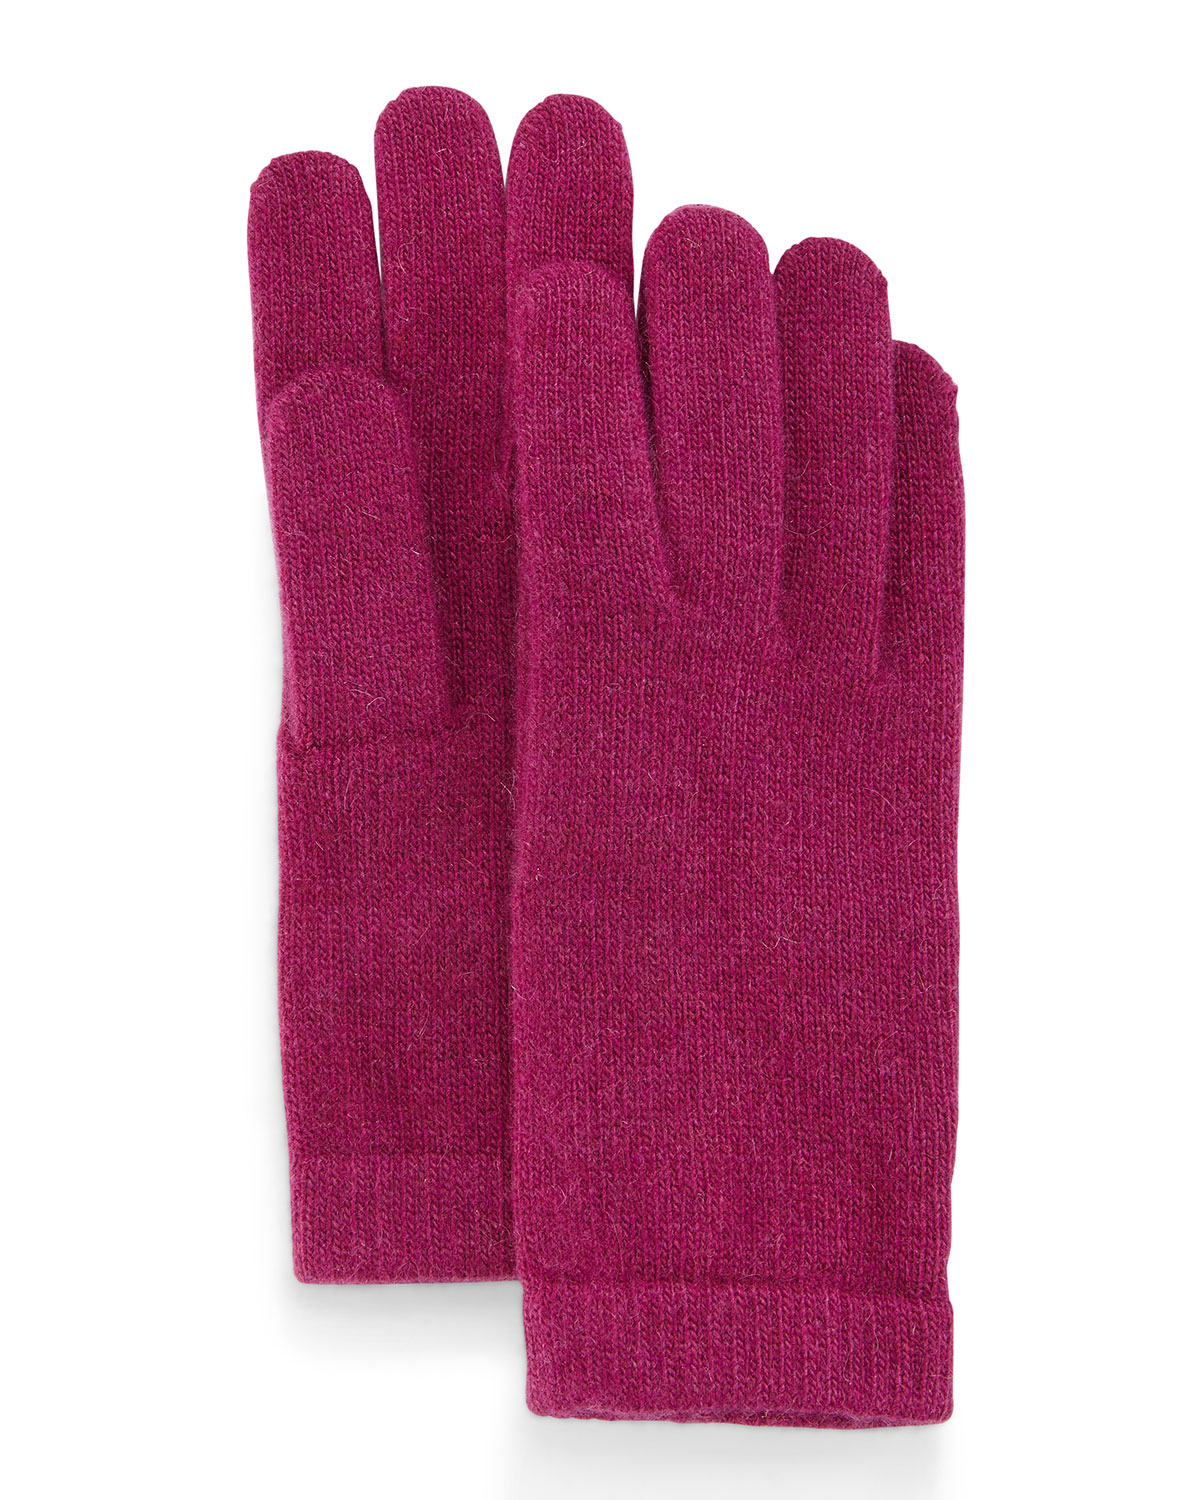 Knitting Pattern Cashmere Gloves : Portolano Cashmere Basic Knit Gloves in Red Lyst